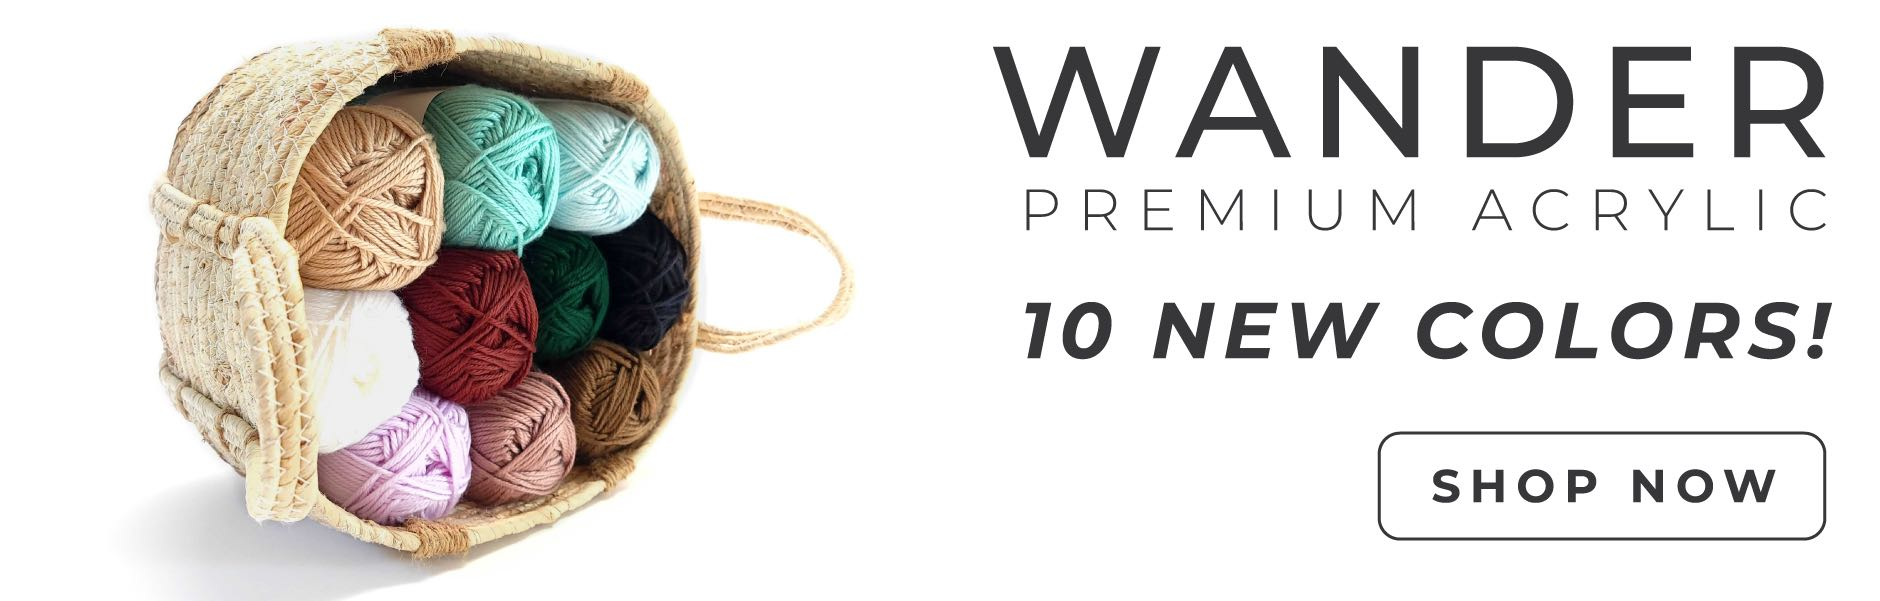 10 new colors of Wander, as bullet skeins, arranged in a circular basket tipped on its side, title reads WANDER premium acrylic, 10 NEW COLORS, with a button that says SHOP NOW